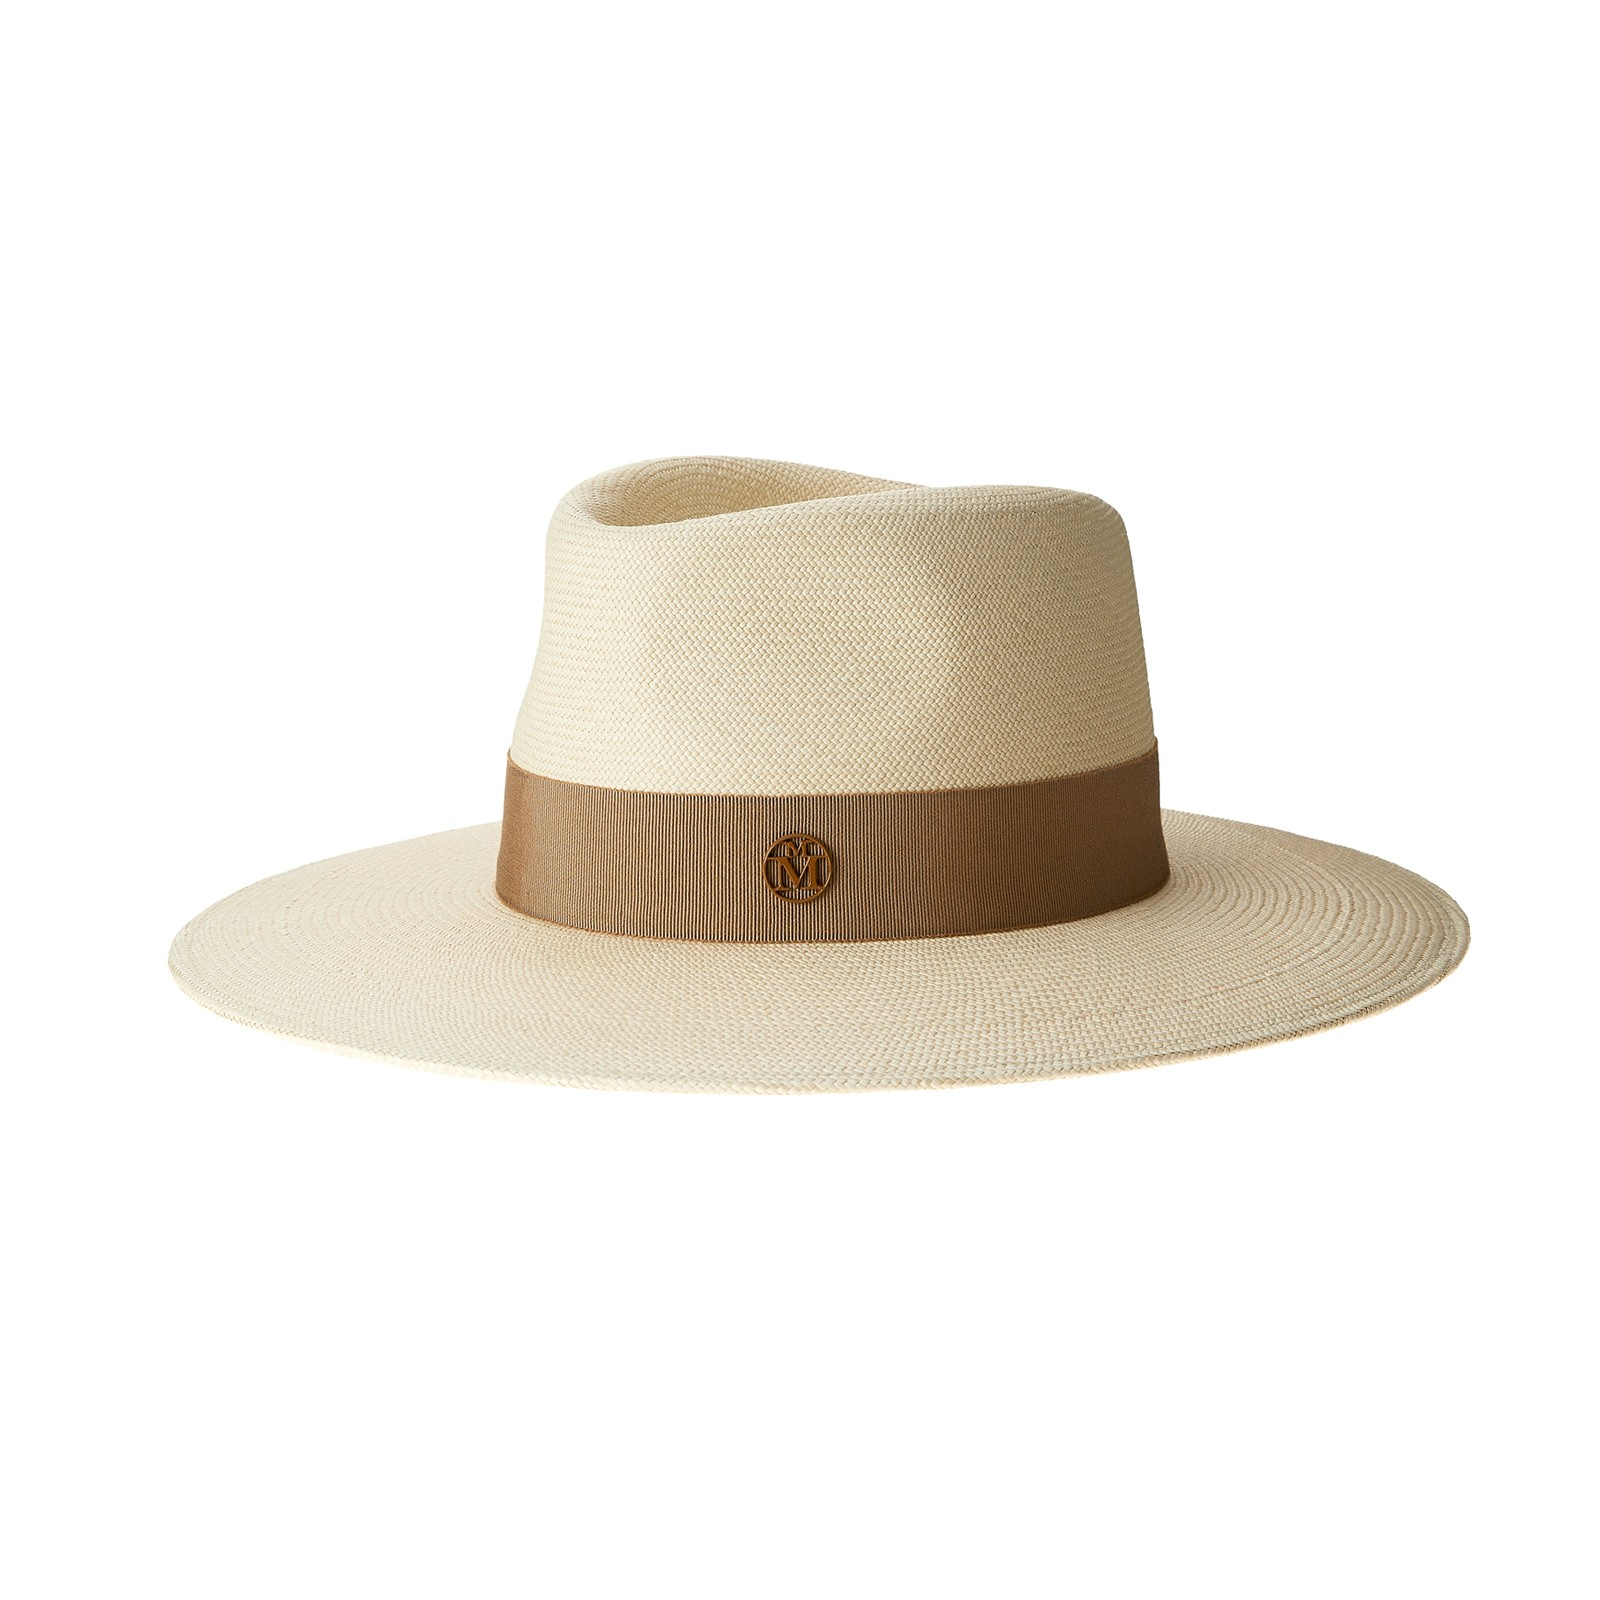 Panama straw fedora hat with beige grosgrain ribbon